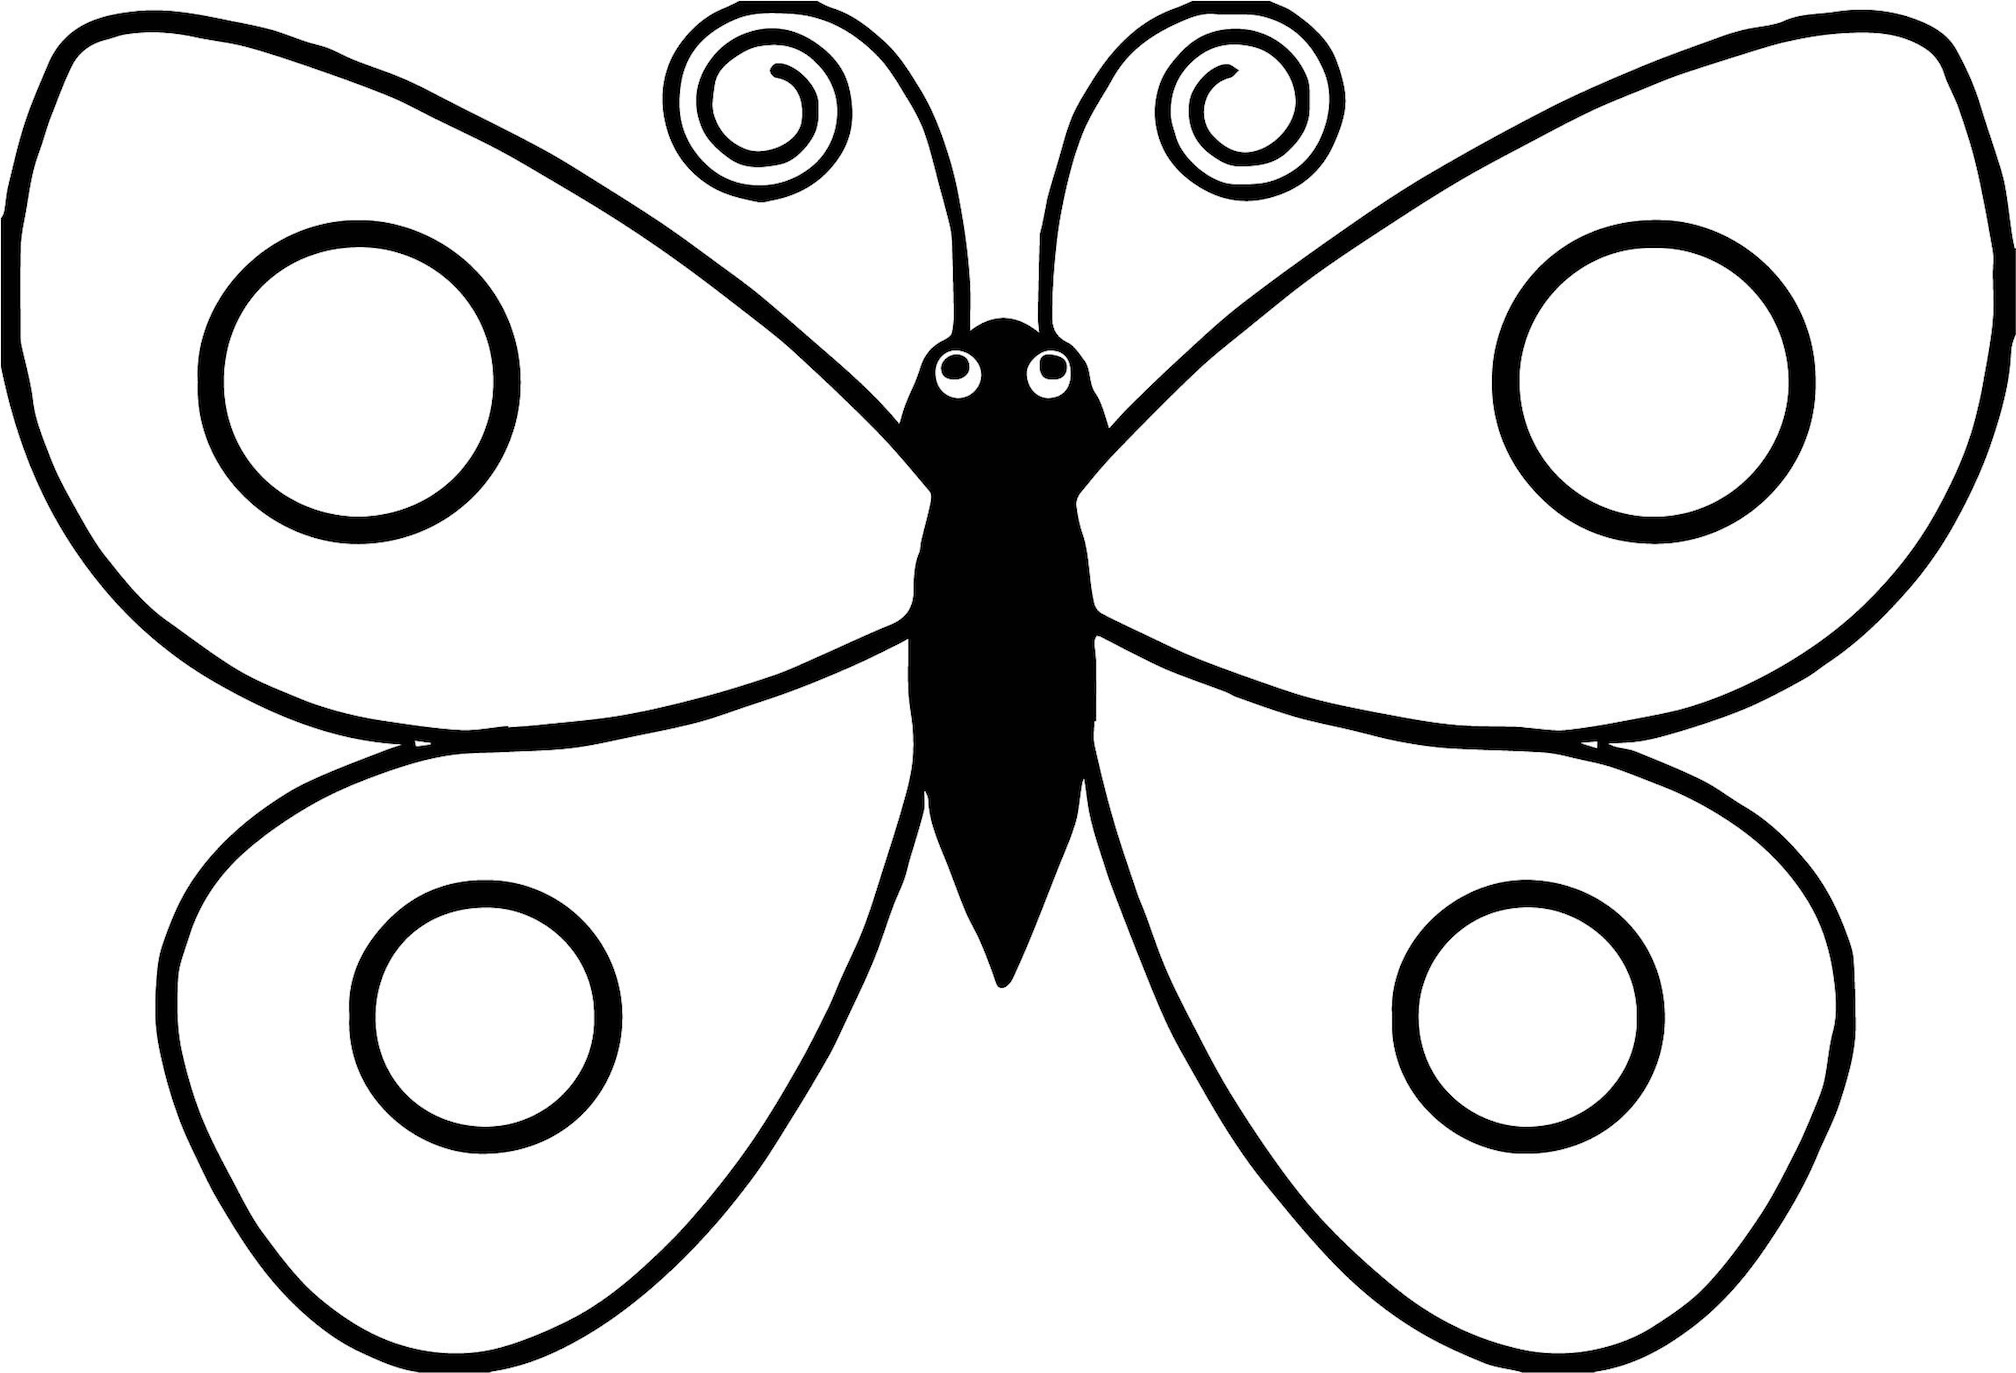 butterflies coloring page butterfly coloring pages for kids and other top 10 butterflies coloring page